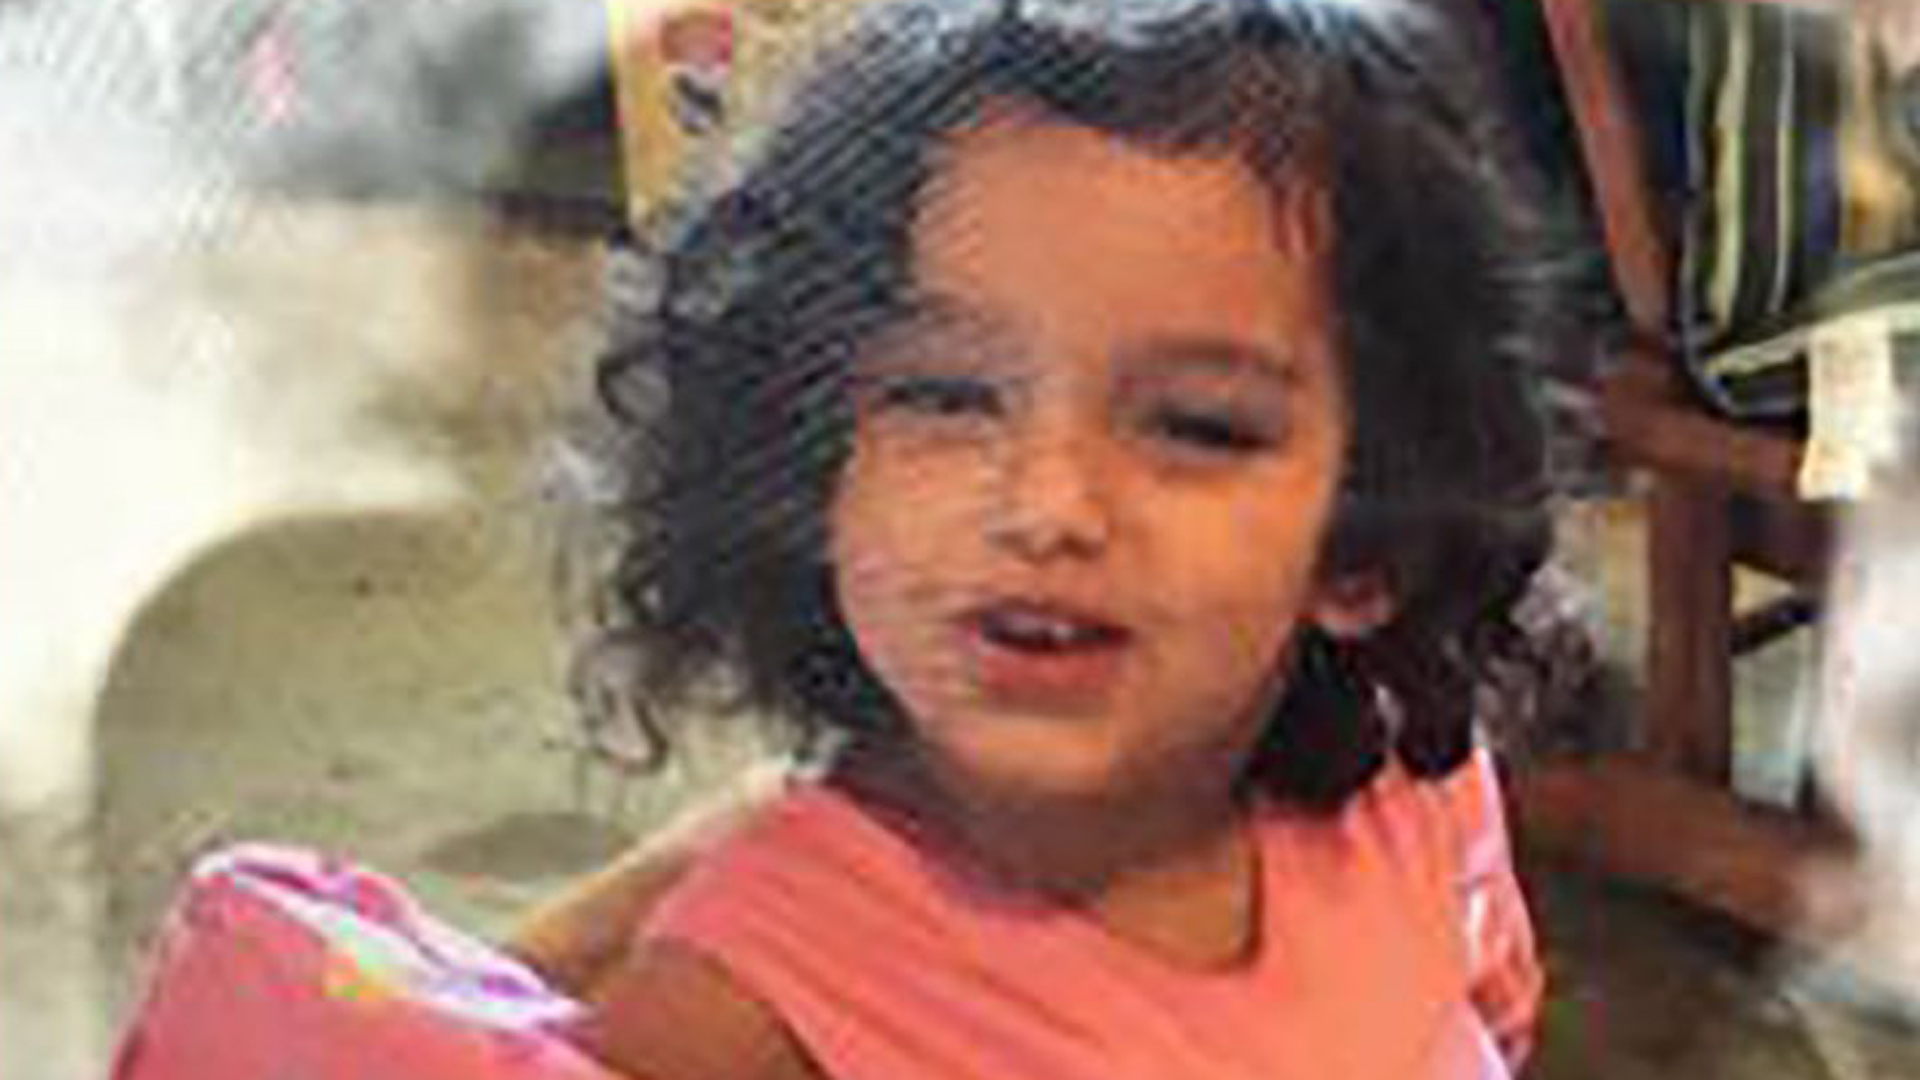 Police in Michigan are looking for a 2-year-old girl who disappeared from a campsite Monday. (Credit: Michigan State Police)